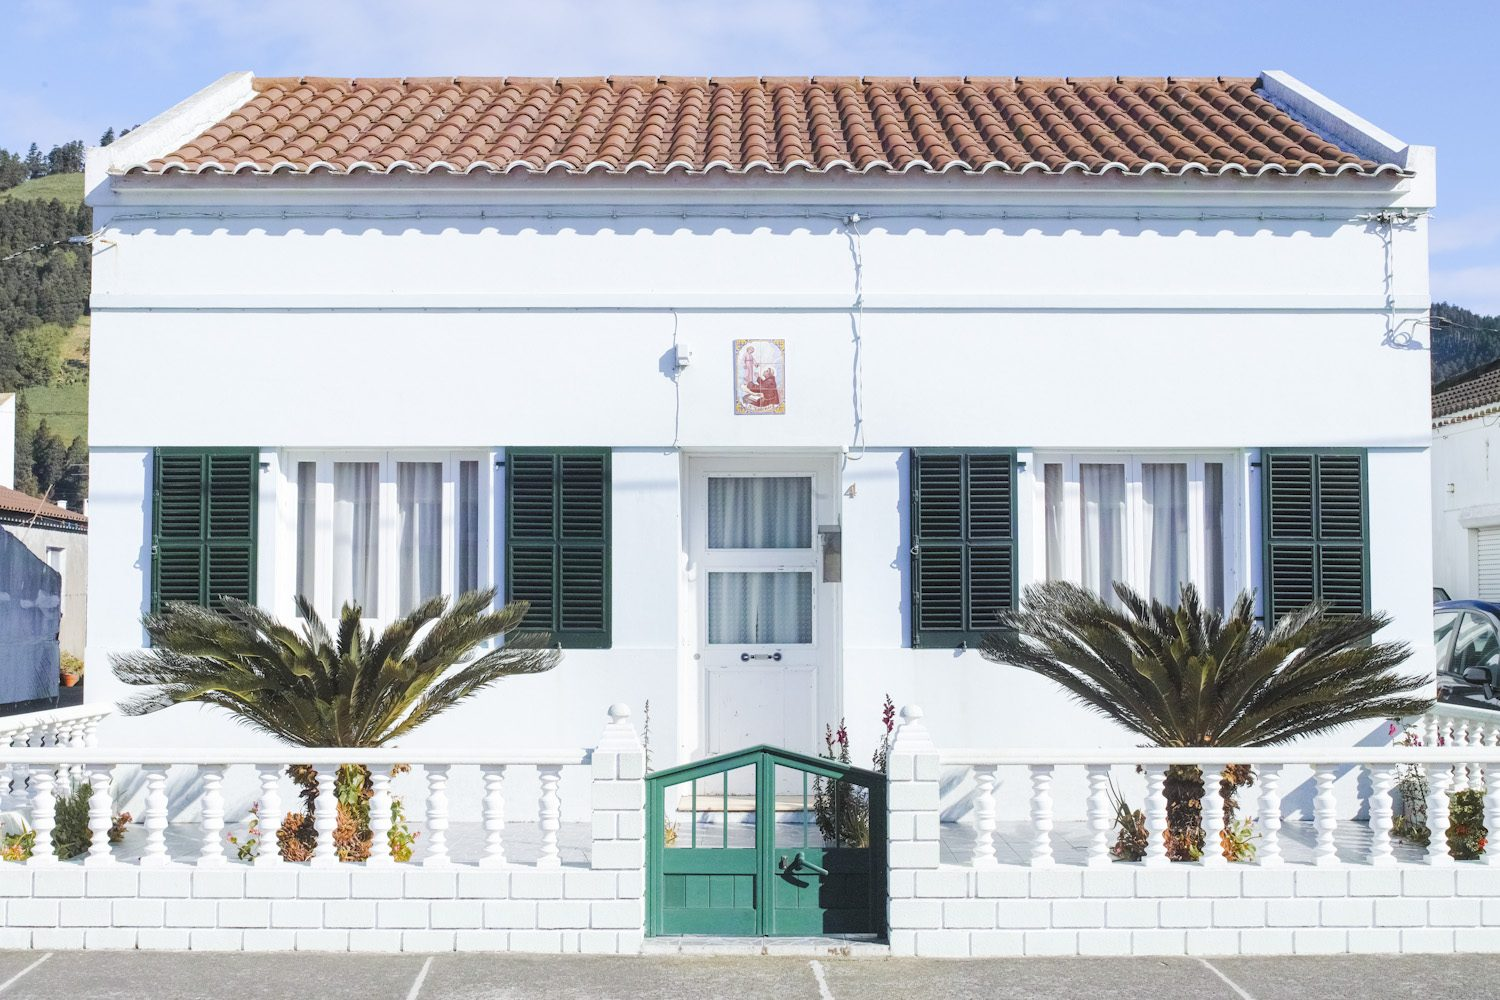 panorama_housesazores_portugal_thevoyageur02